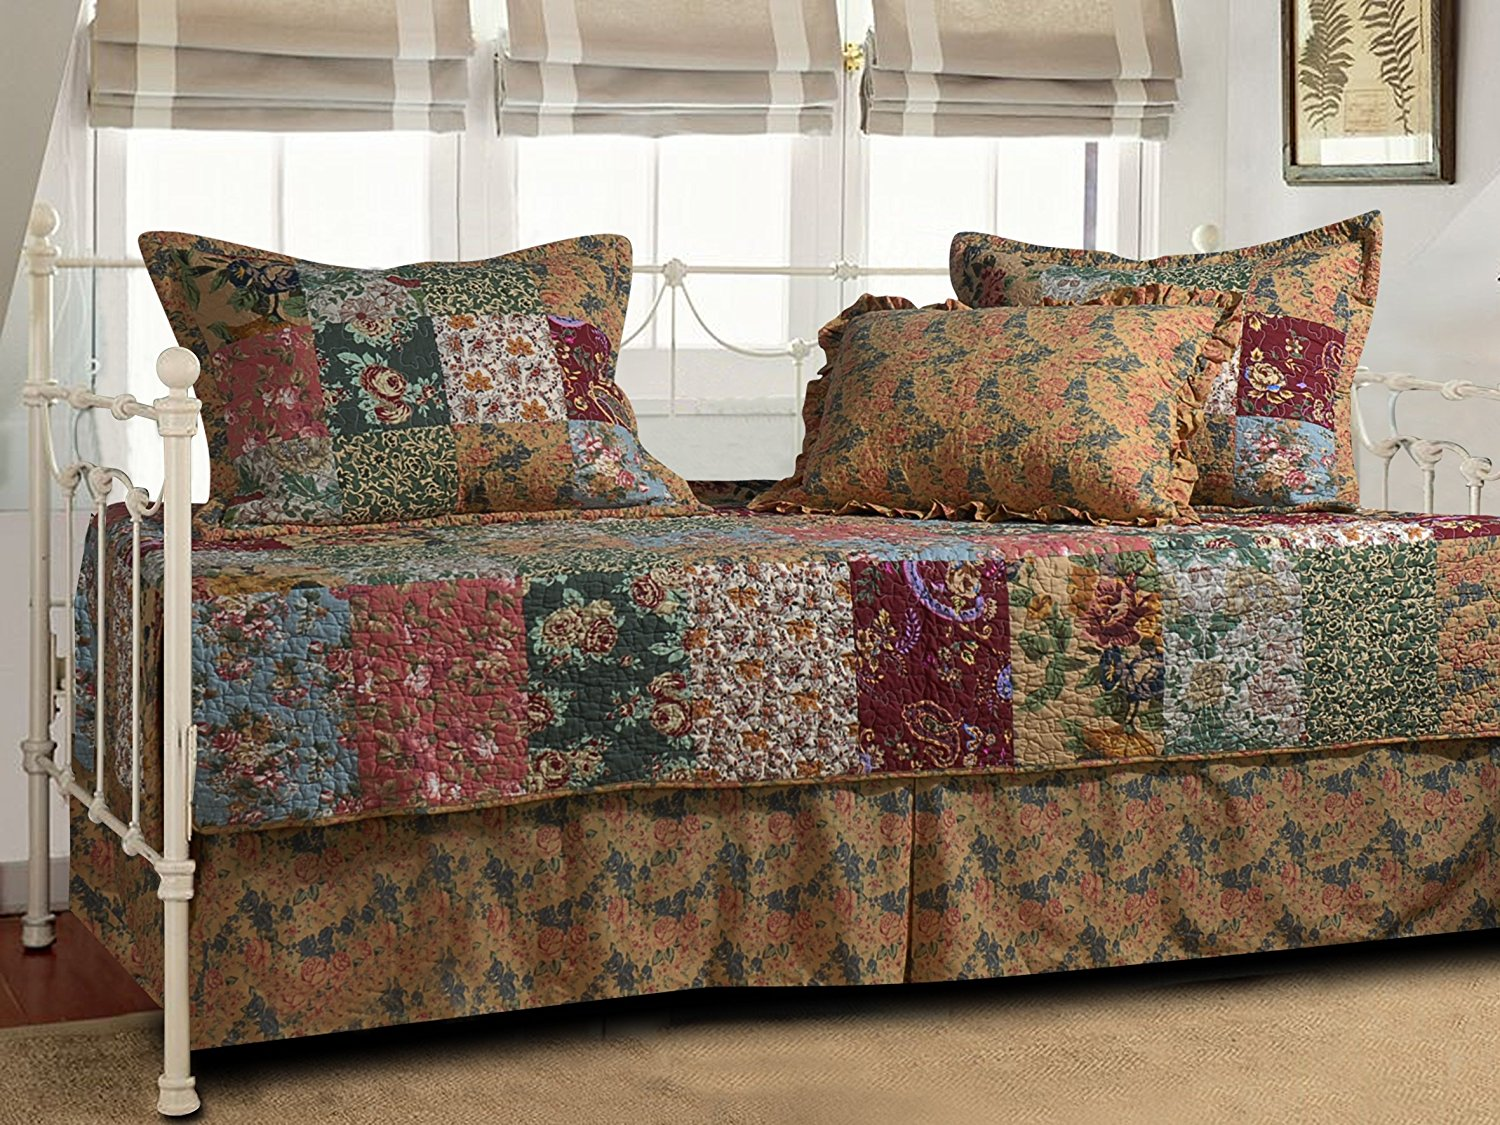 8. Greenland Home Antique Chic Daybed Set